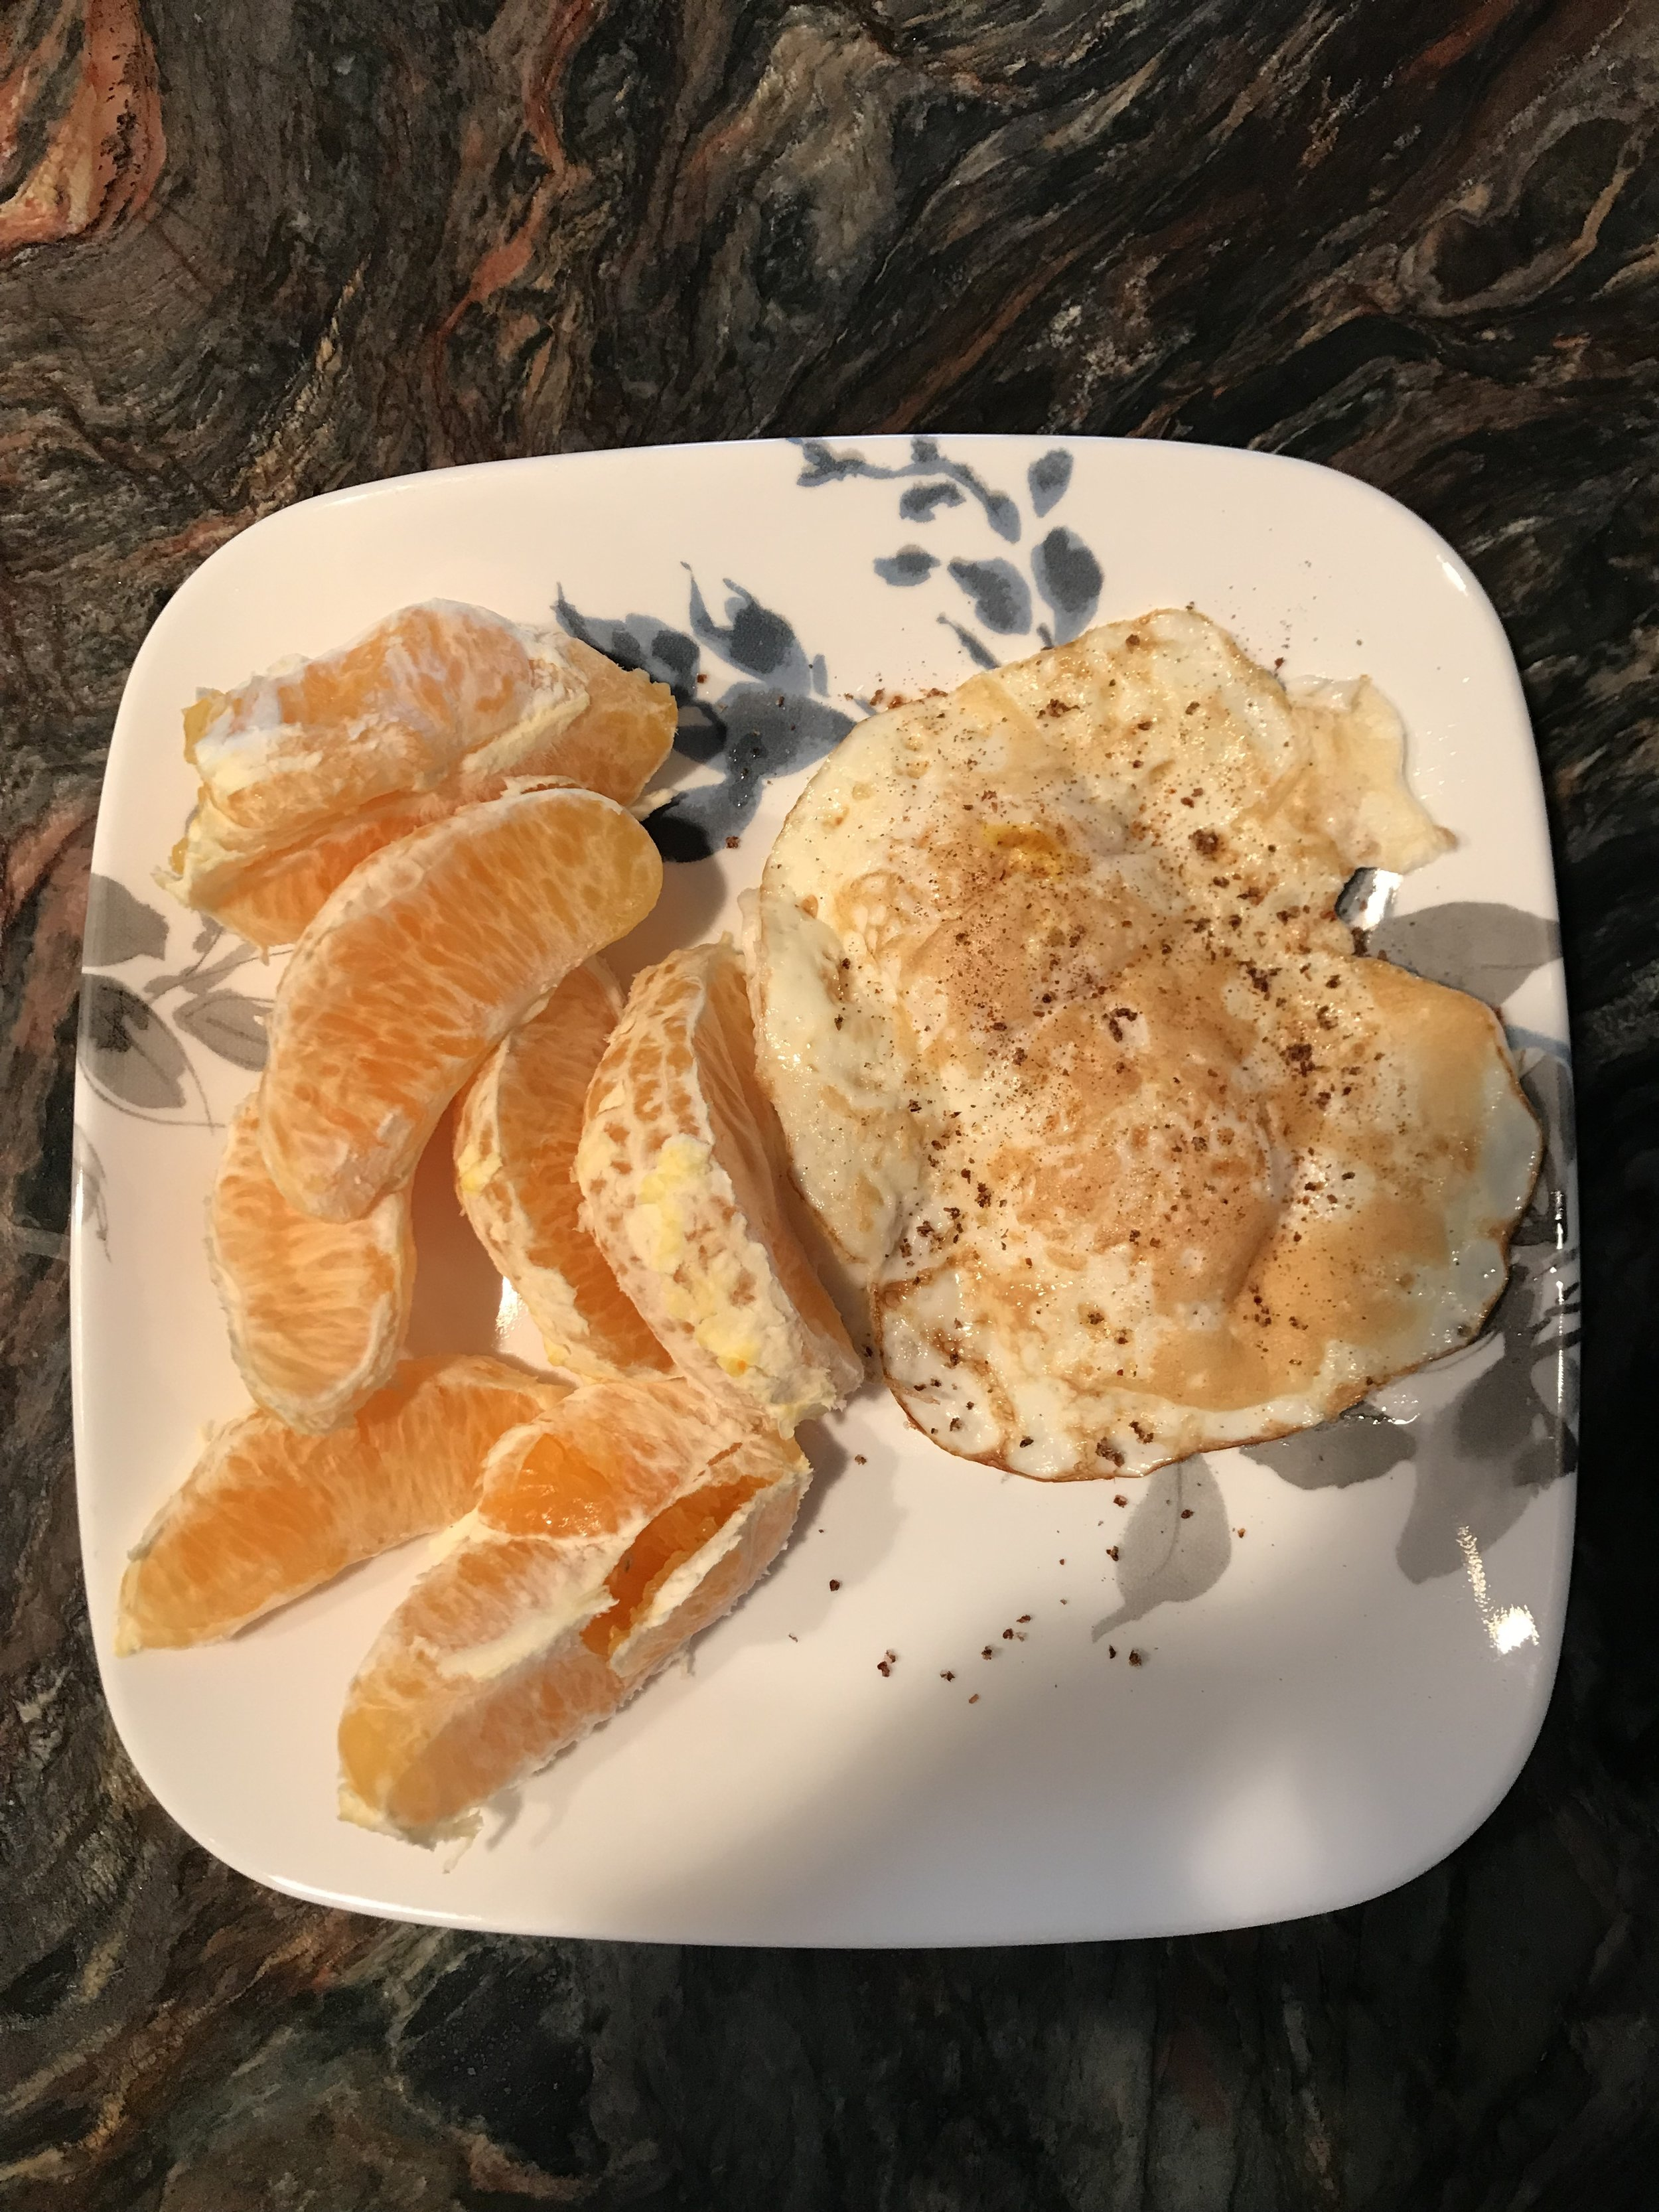 BREAKFAST - 2 Fried Eggs, and only ate about 1/4 of the Orange (it was dry).